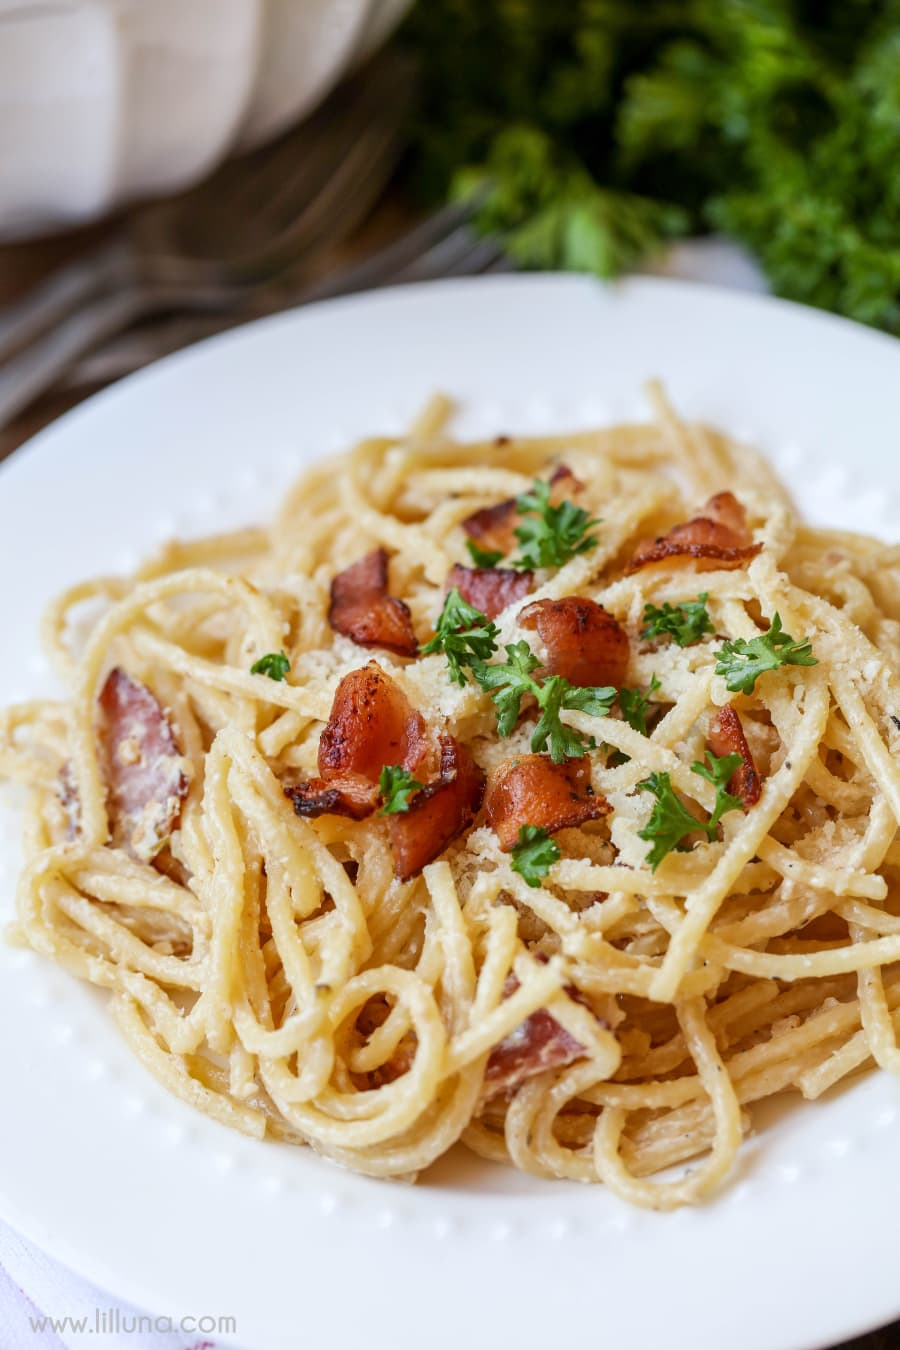 Spaghetti Carbonara - a delicious and flavorful pasta dish that has cream cheese and Parmesan cheese along with bacon and Parsley.